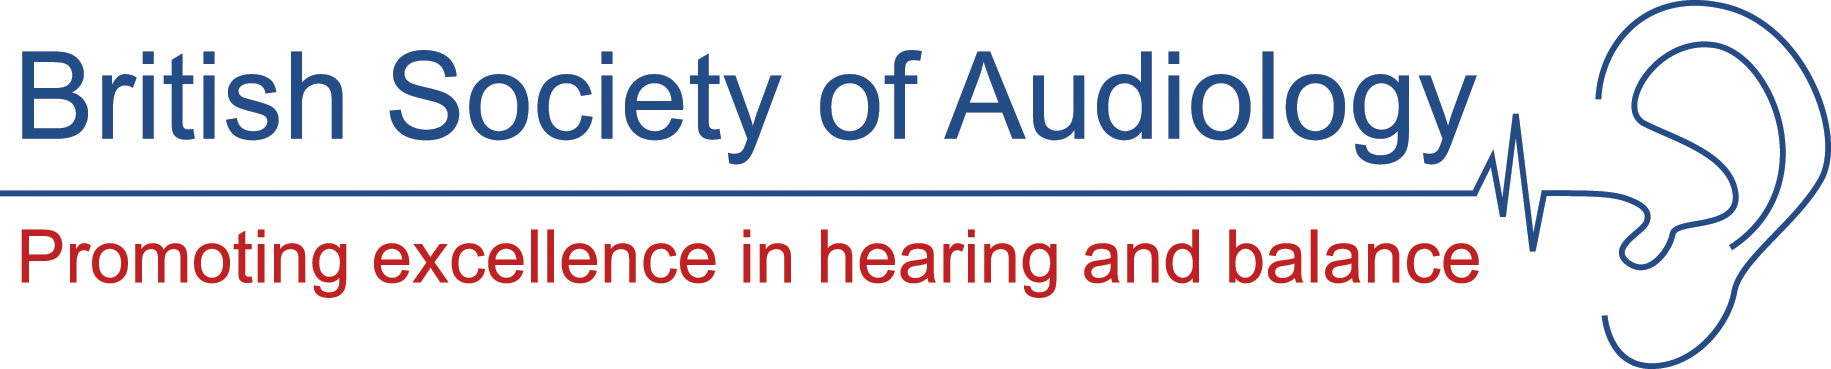 Stop cuts to NHS Hearing Aids